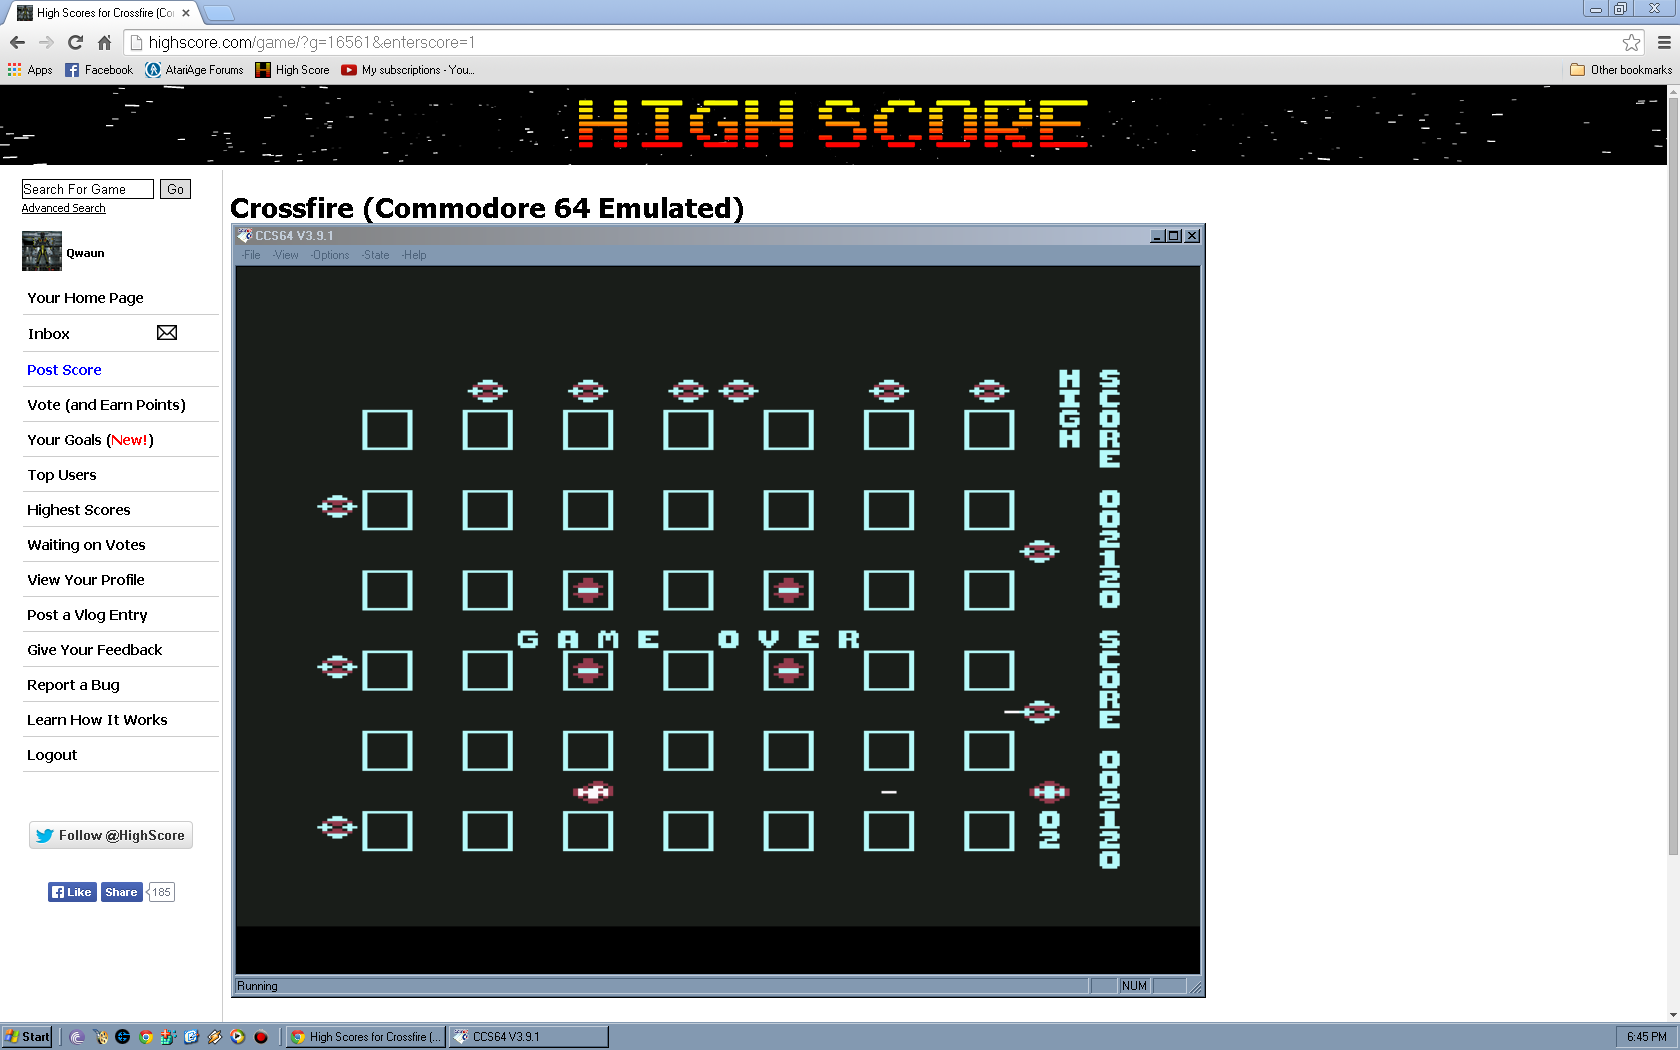 Qwaun: Crossfire (Commodore 64 Emulated) 2,120 points on 2014-05-02 11:56:09